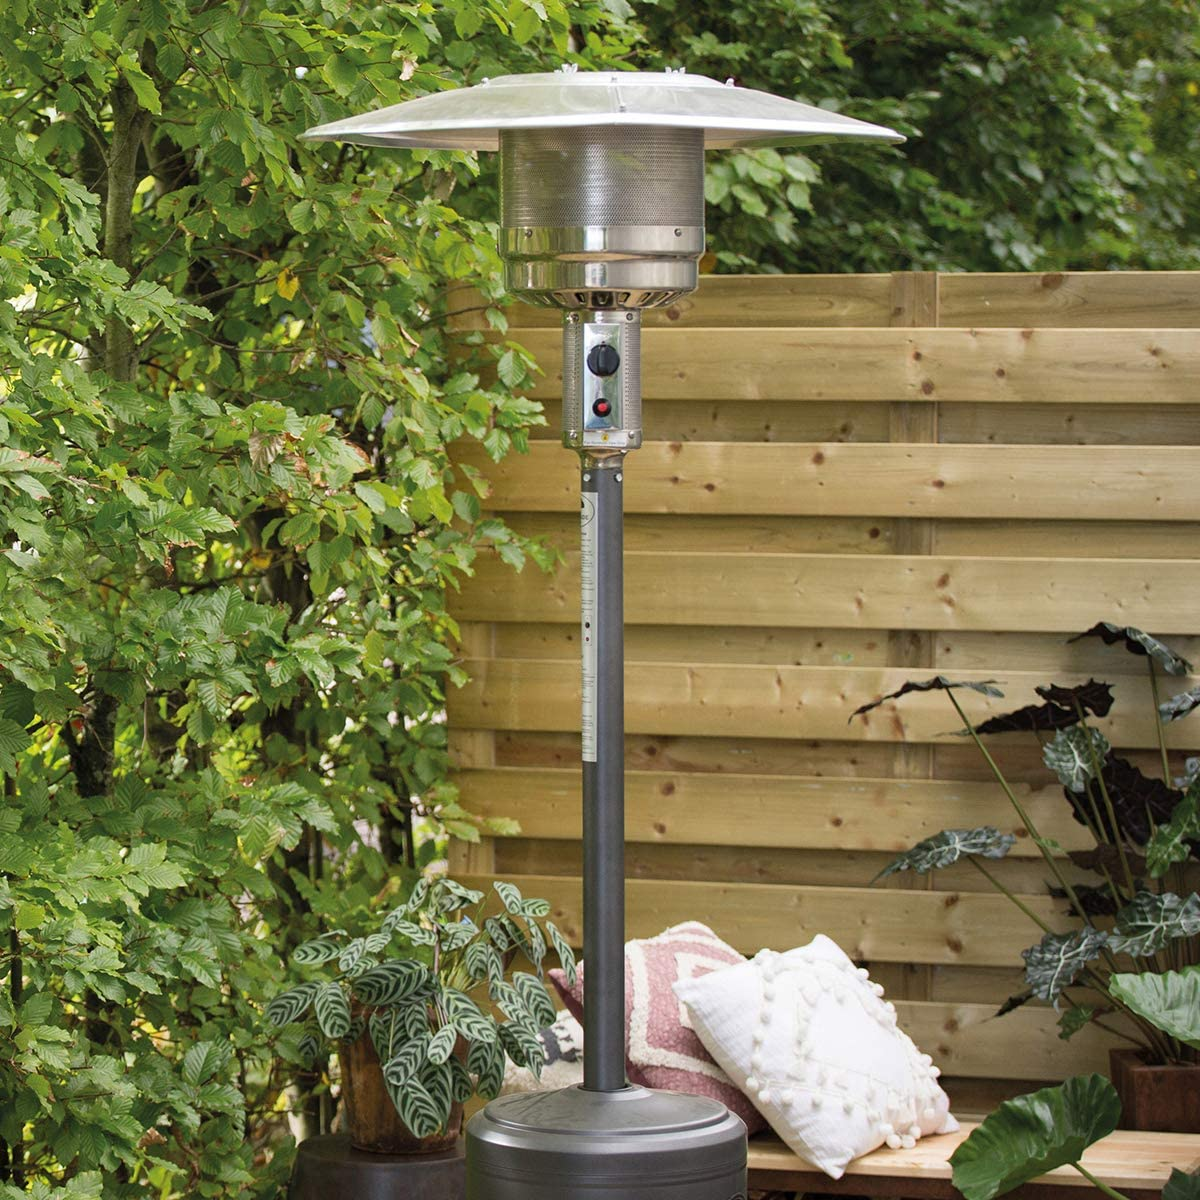 Outtrade Gas Patio Heater